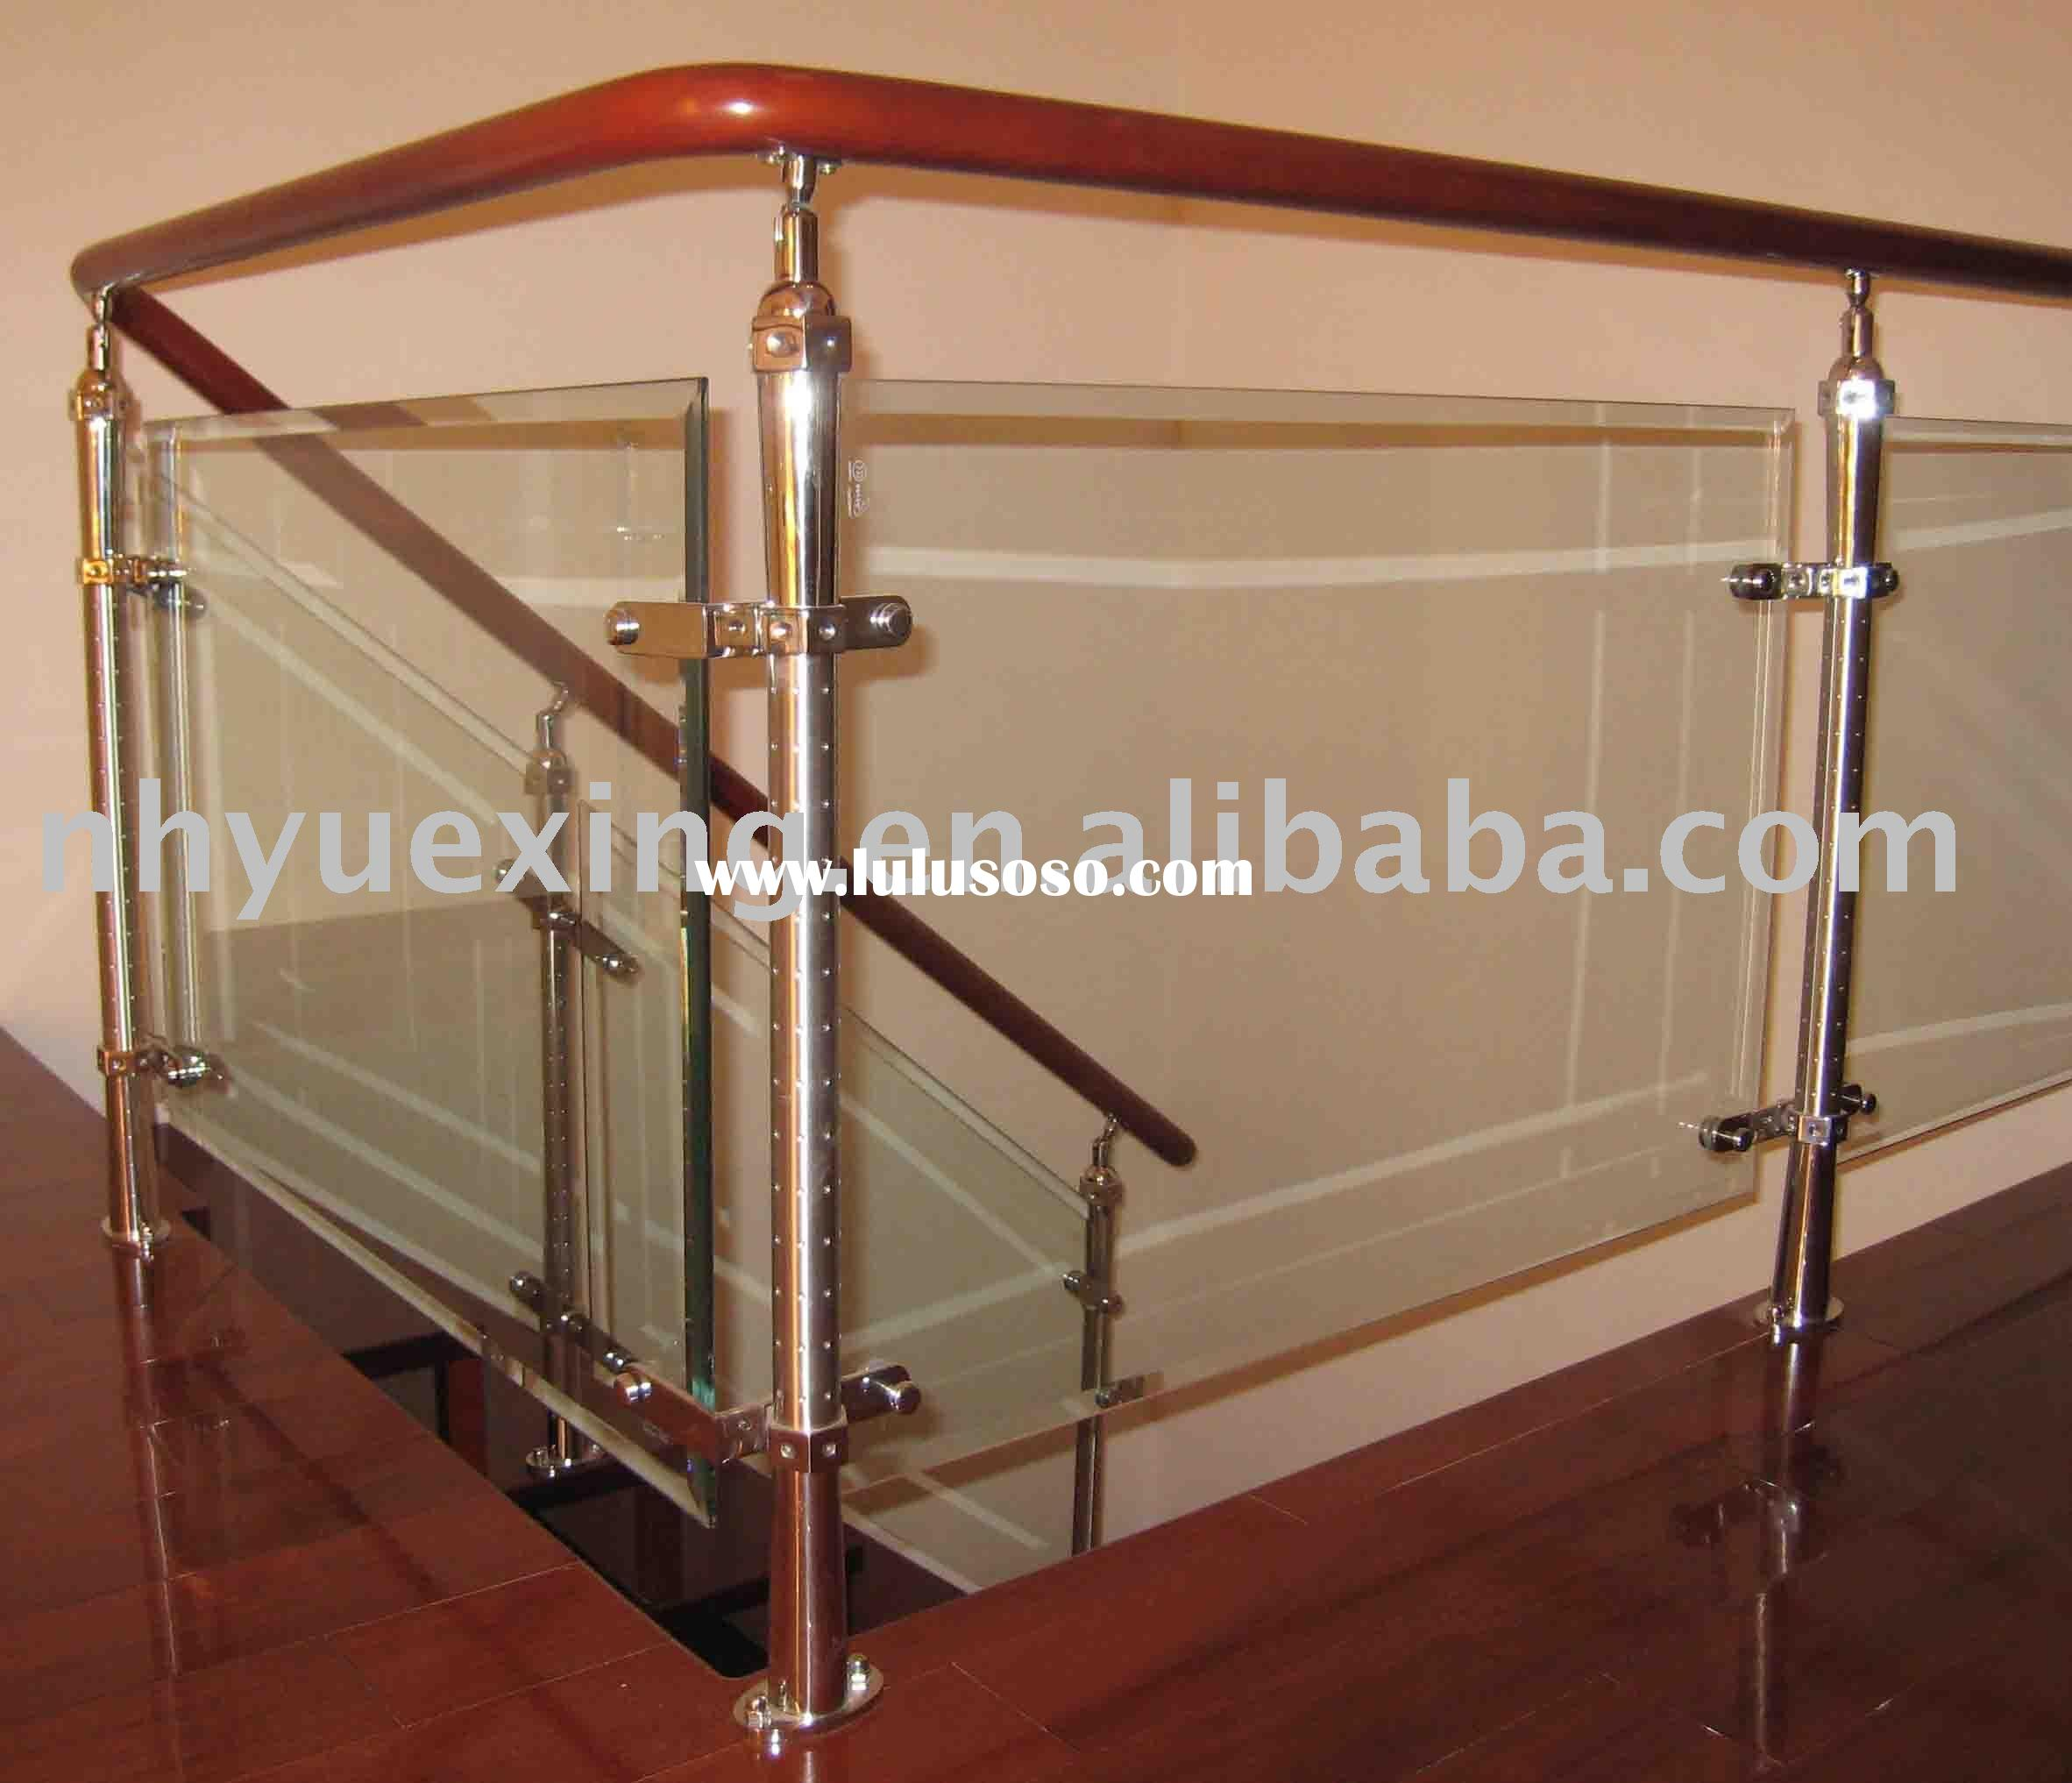 Traditional Tangent Handrail  THISisCarpentry